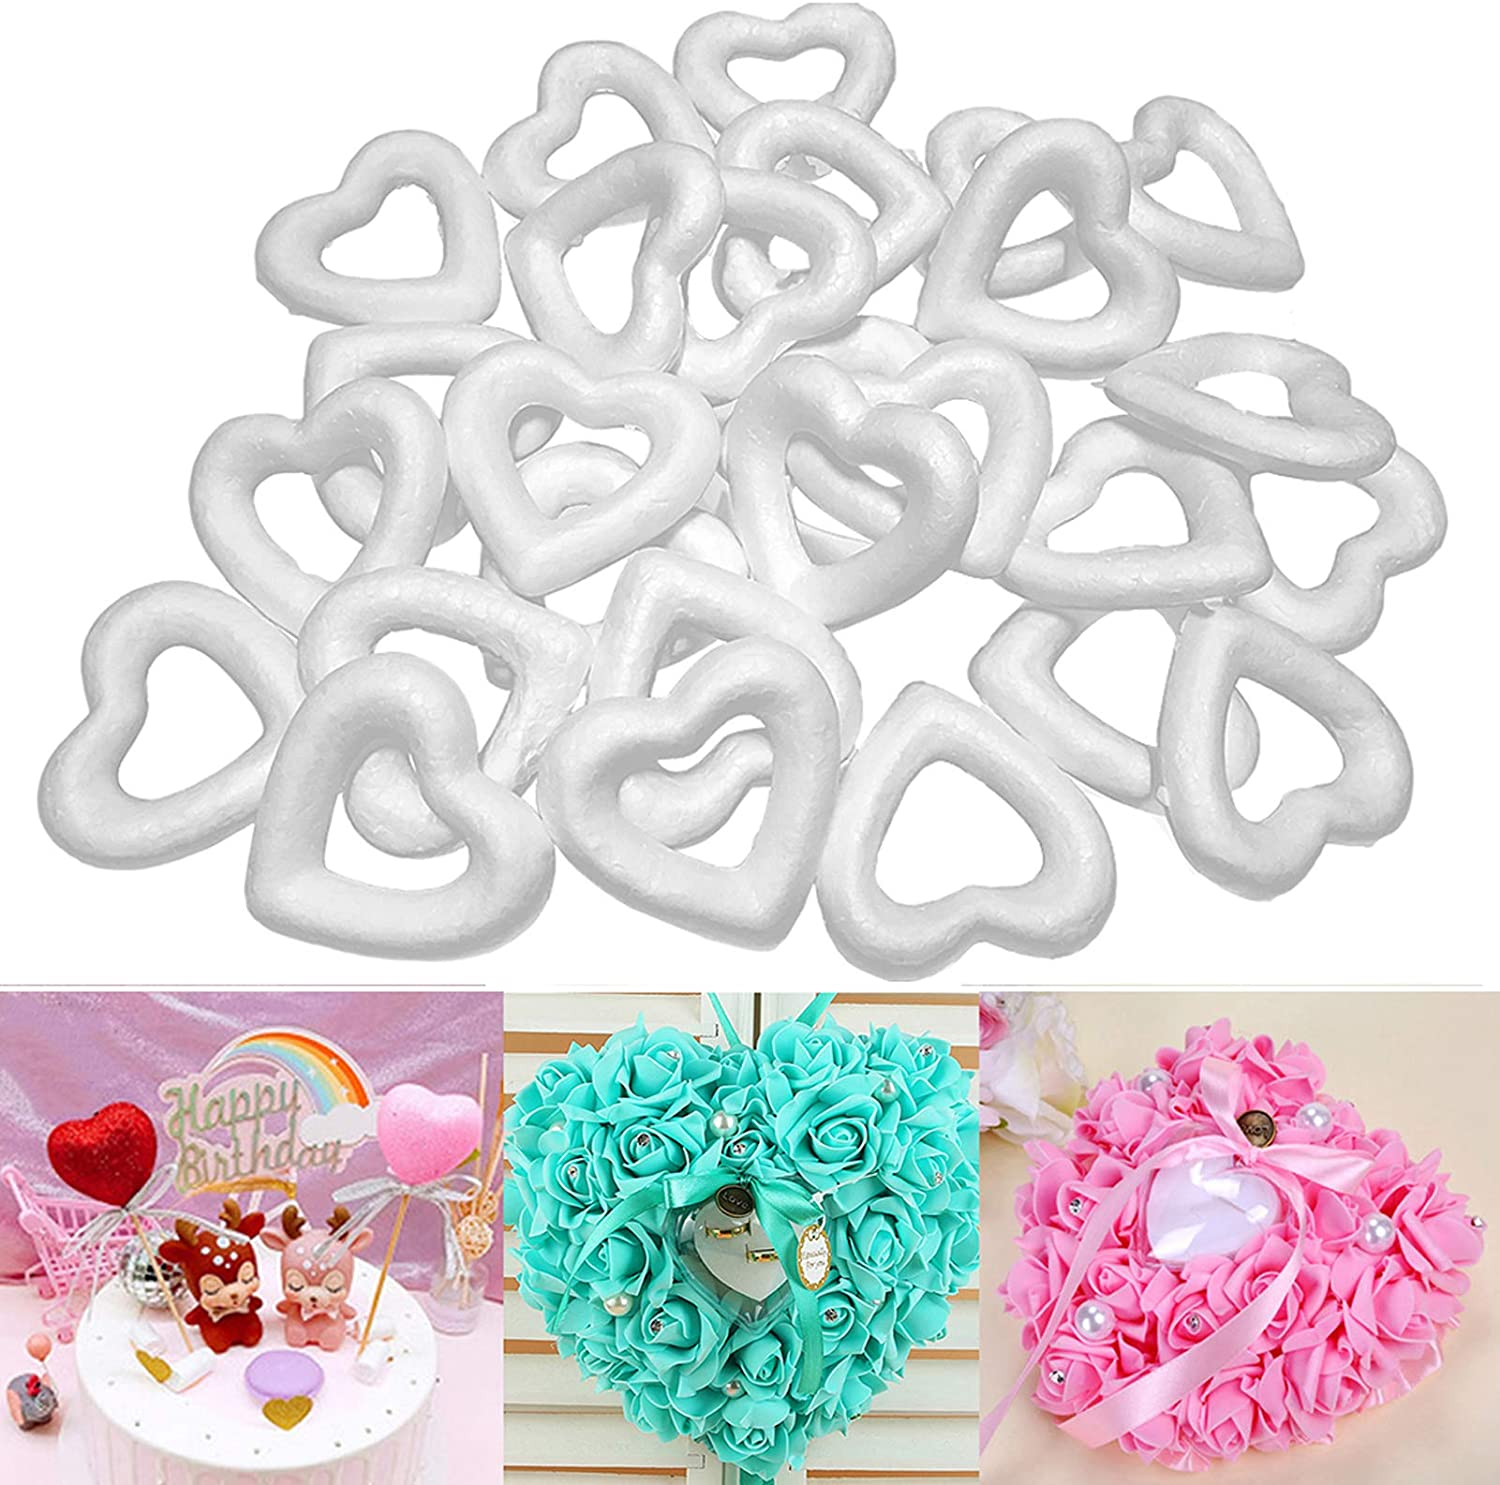 Actenly Heart Shaped Foam Wreath 20 Pack Polystyrene Foam Wreath Open Heart Shaped Extruded Heart Foam Wreath Diy Supplies For Craft Projects And Wedding Decorations White 2 4x2 3x0 5 Inches Arts Crafts